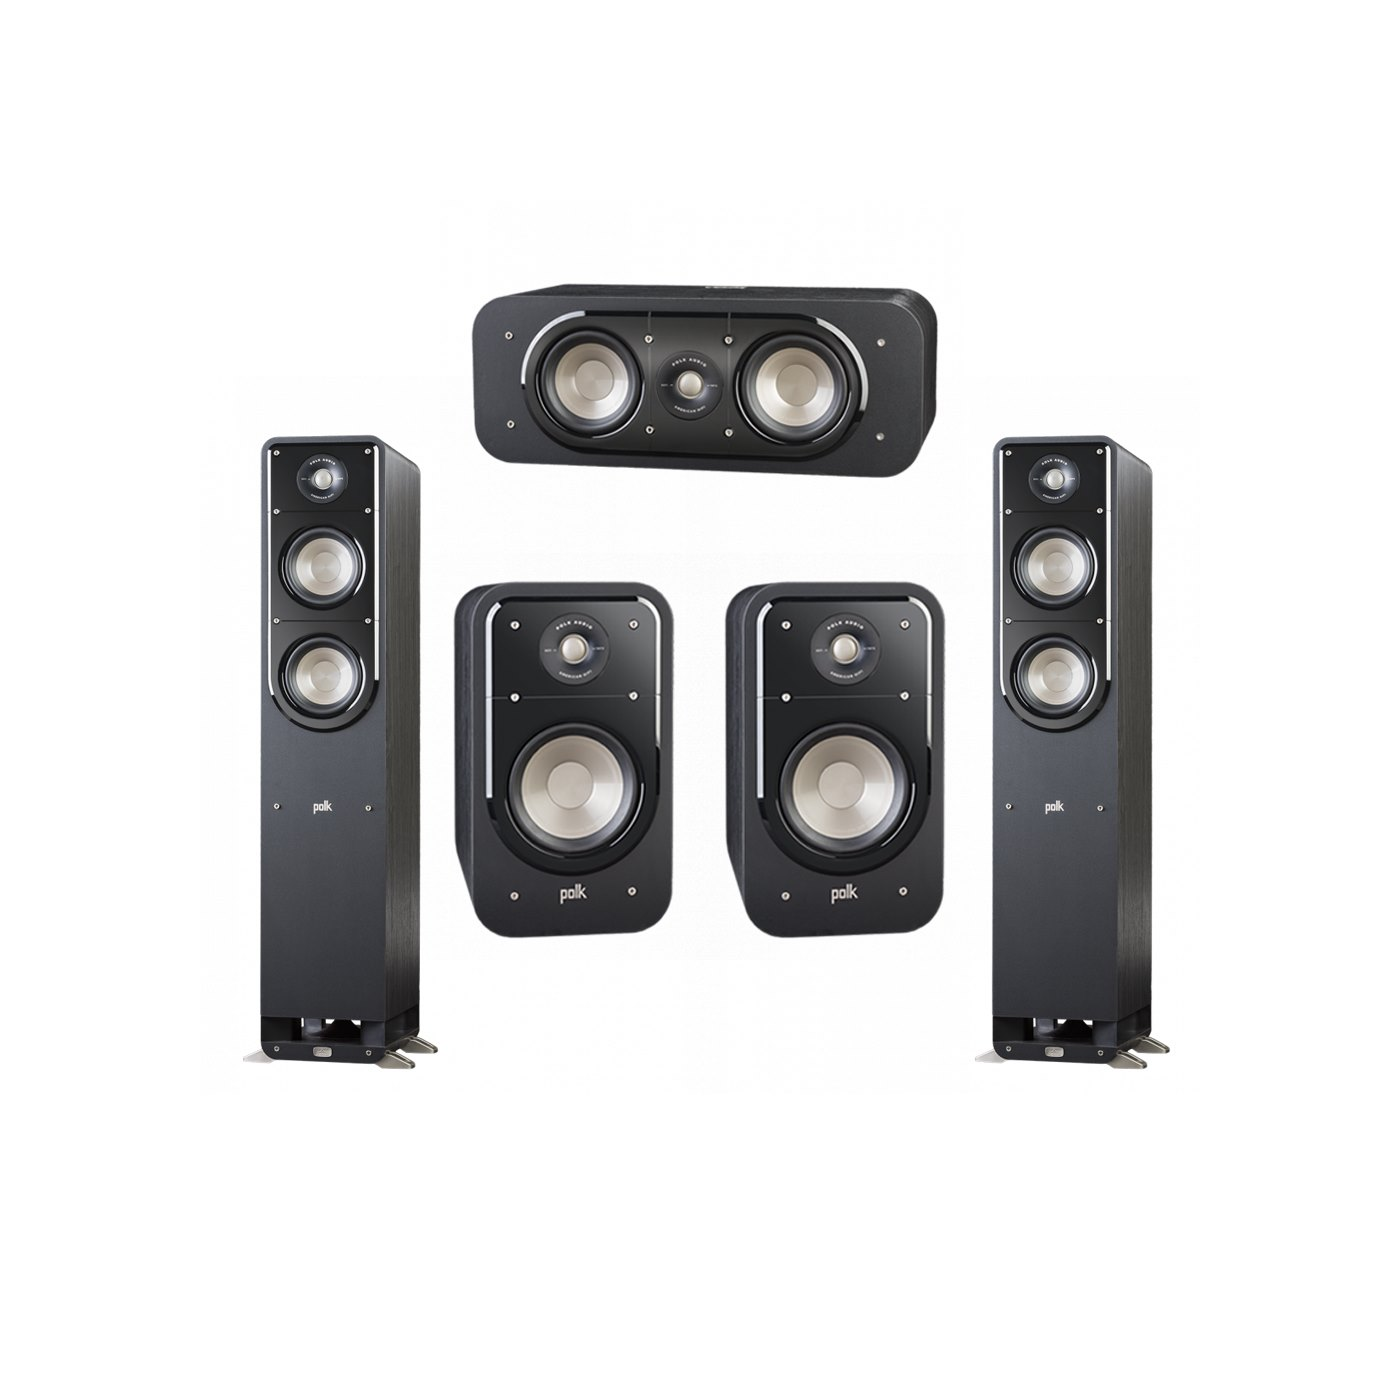 Polk Audio Signature 5.0 System with 2 S50 Tower Speaker, 1 Polk S30 Center Speaker, 2 Polk S20 Bookshelf Speaker